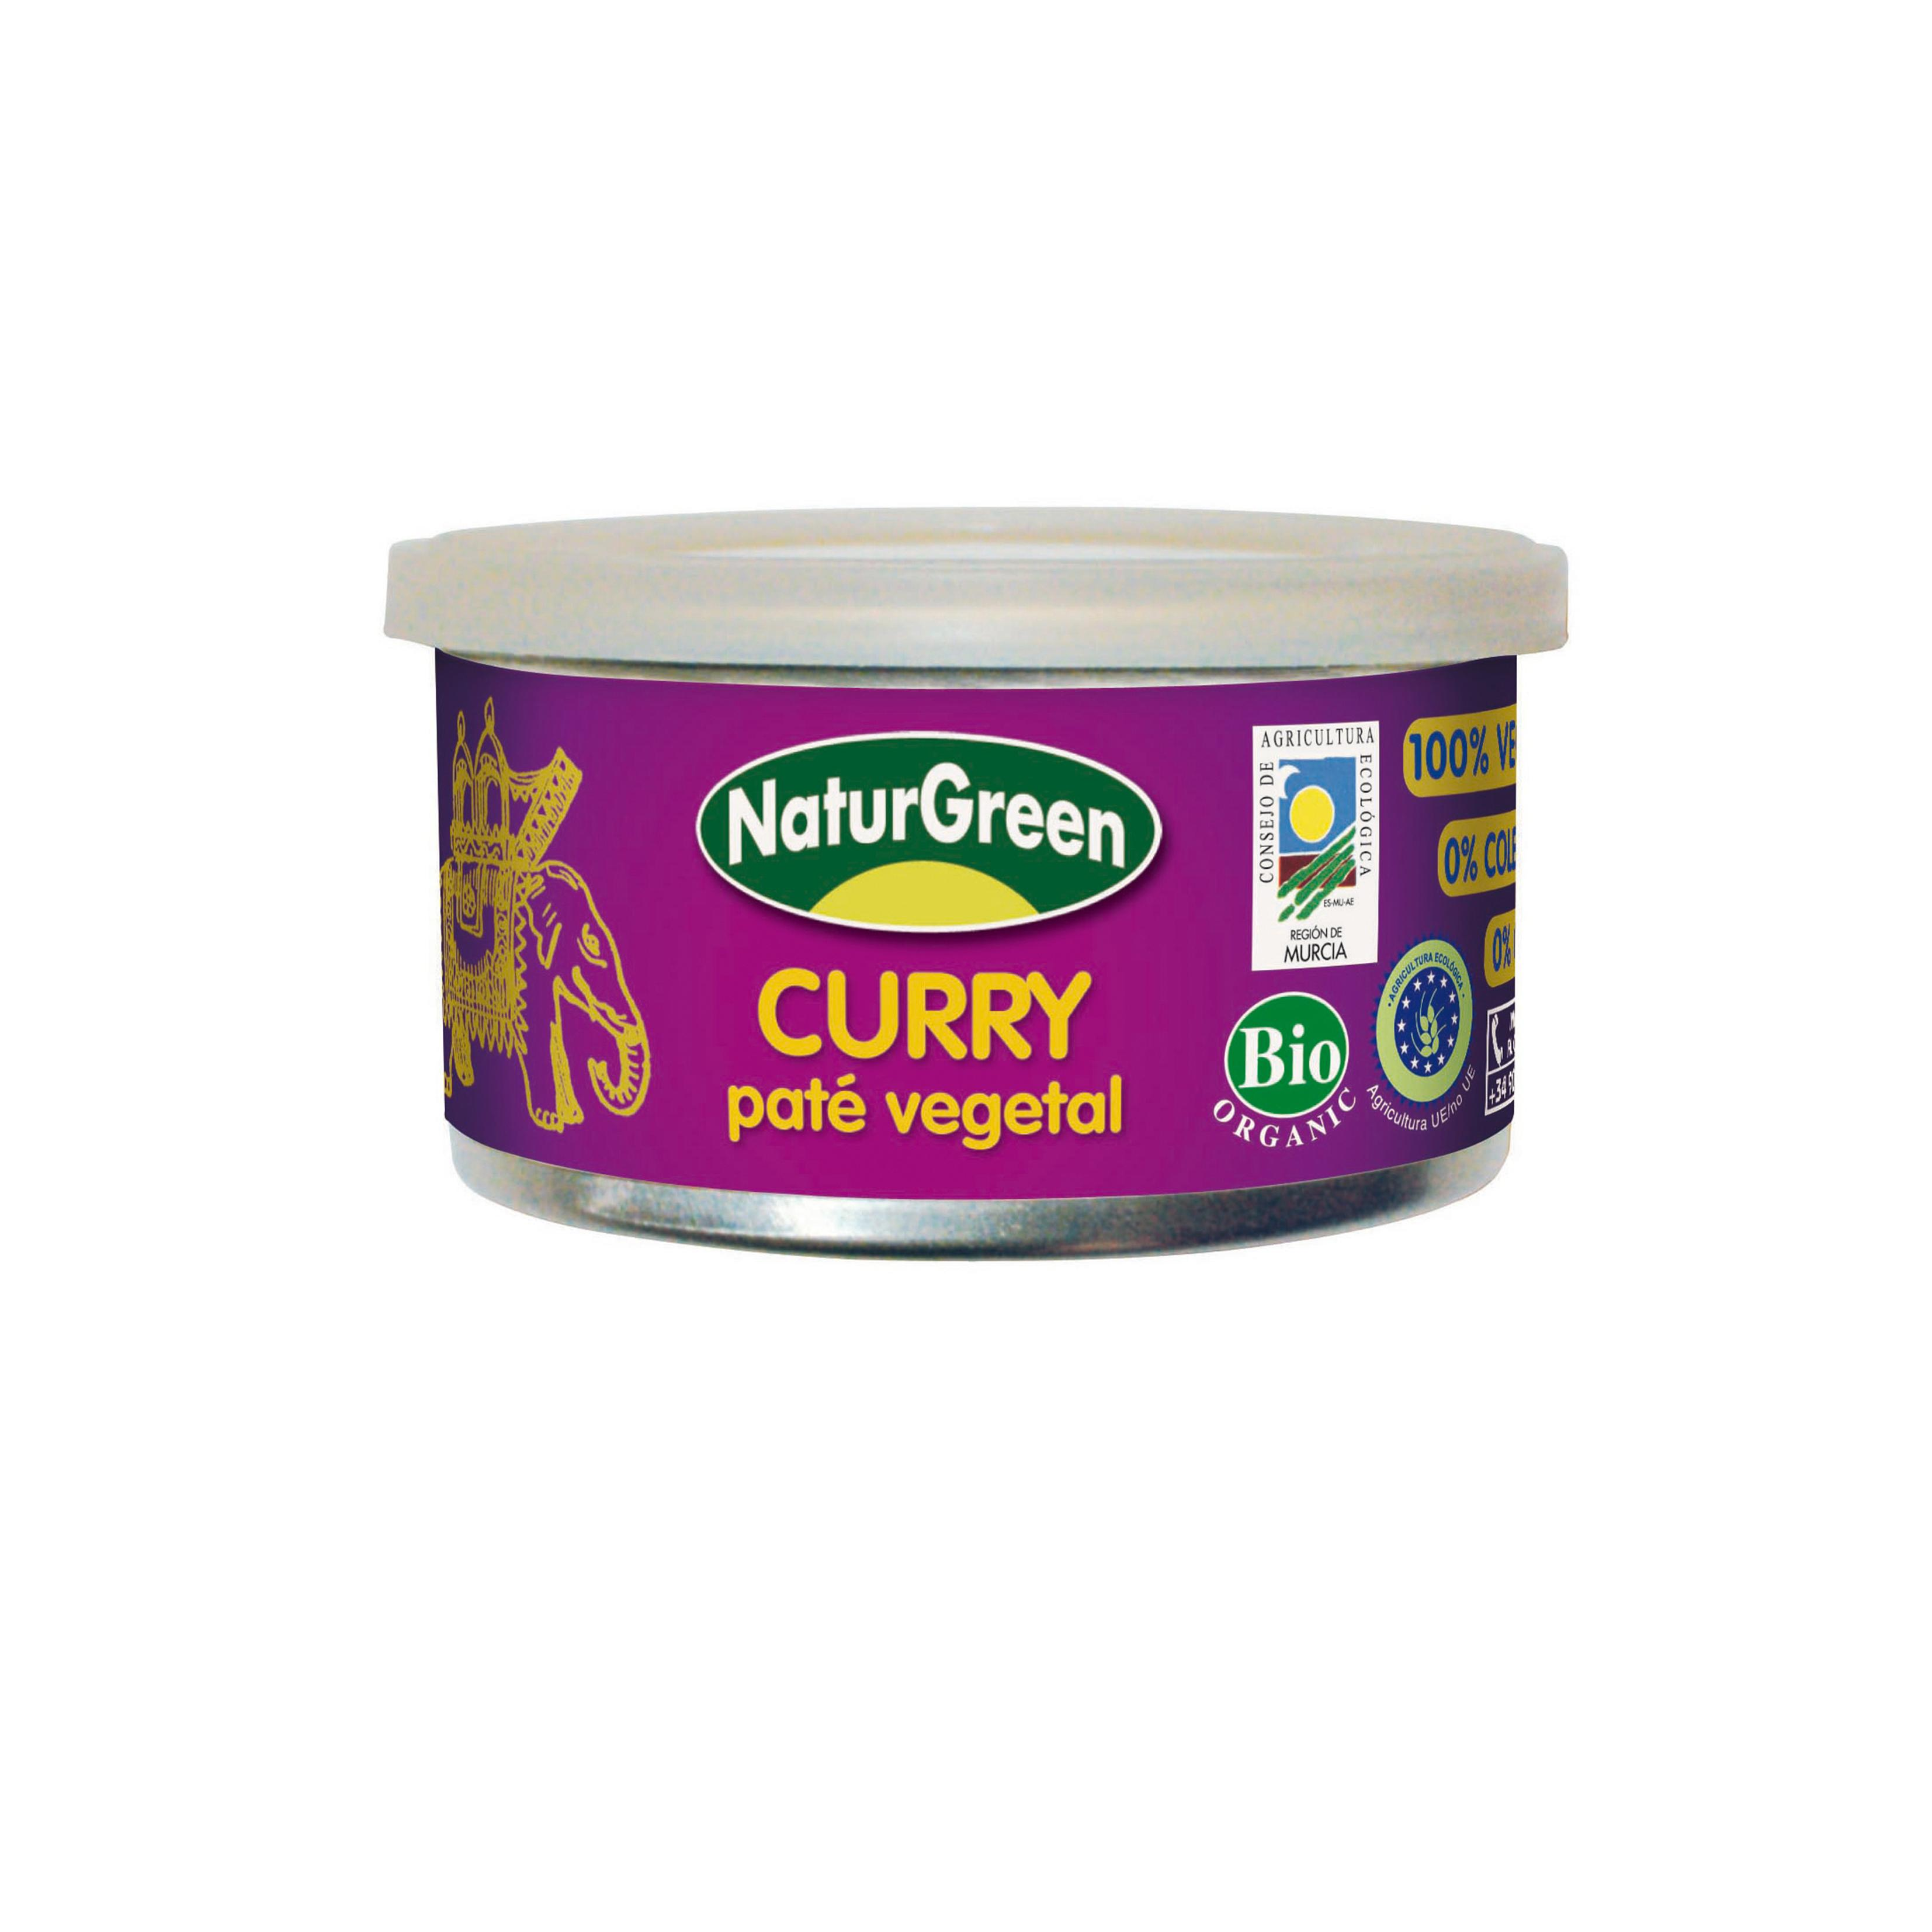 img/naturgreen-pate-curry-bio-125-g.png.jpg